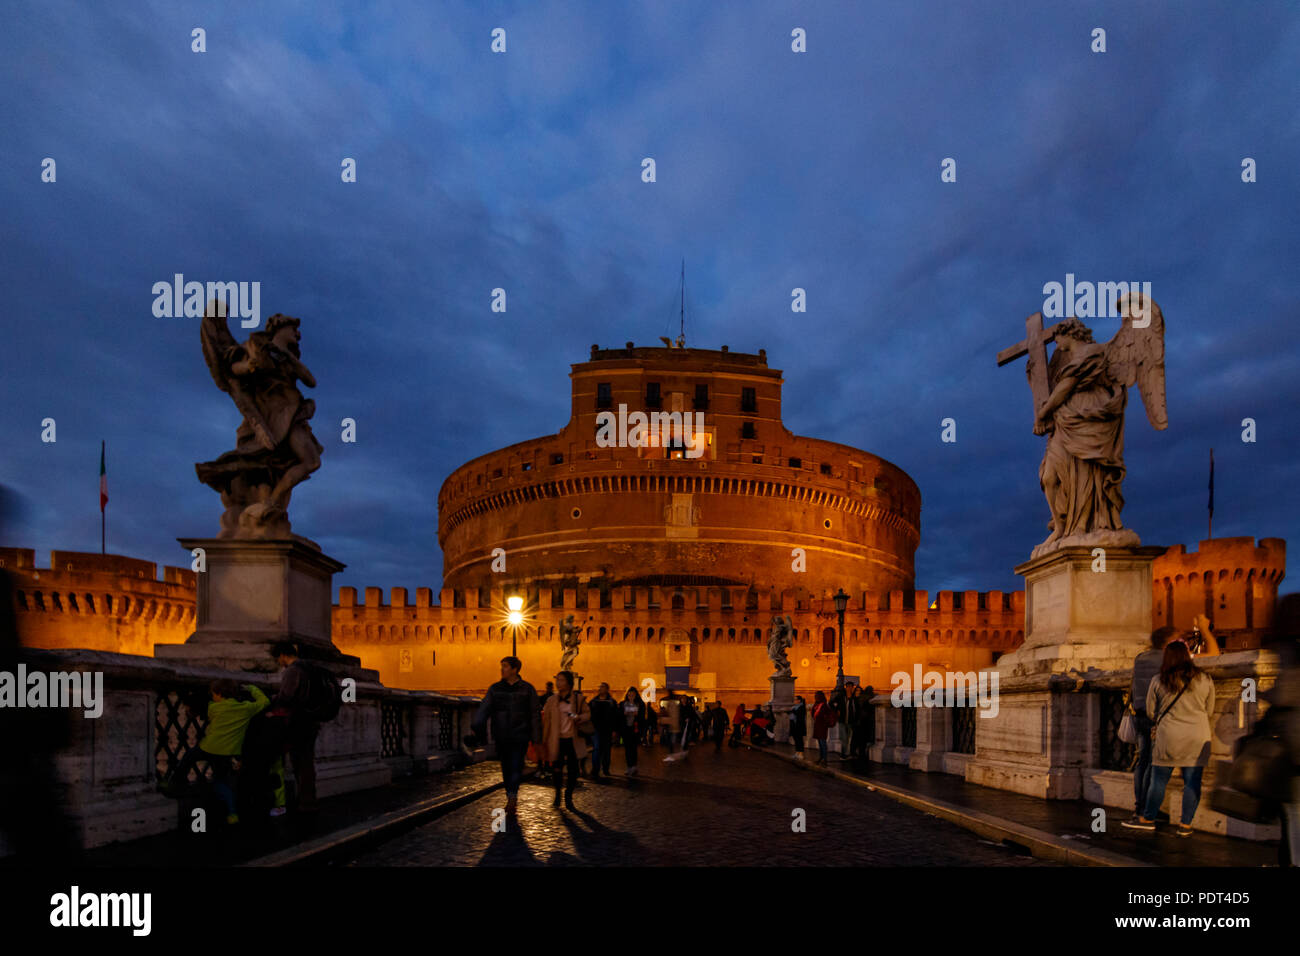 The St. Angelo's Castle in Rome (Italy) at the blue hour special light. - Stock Image